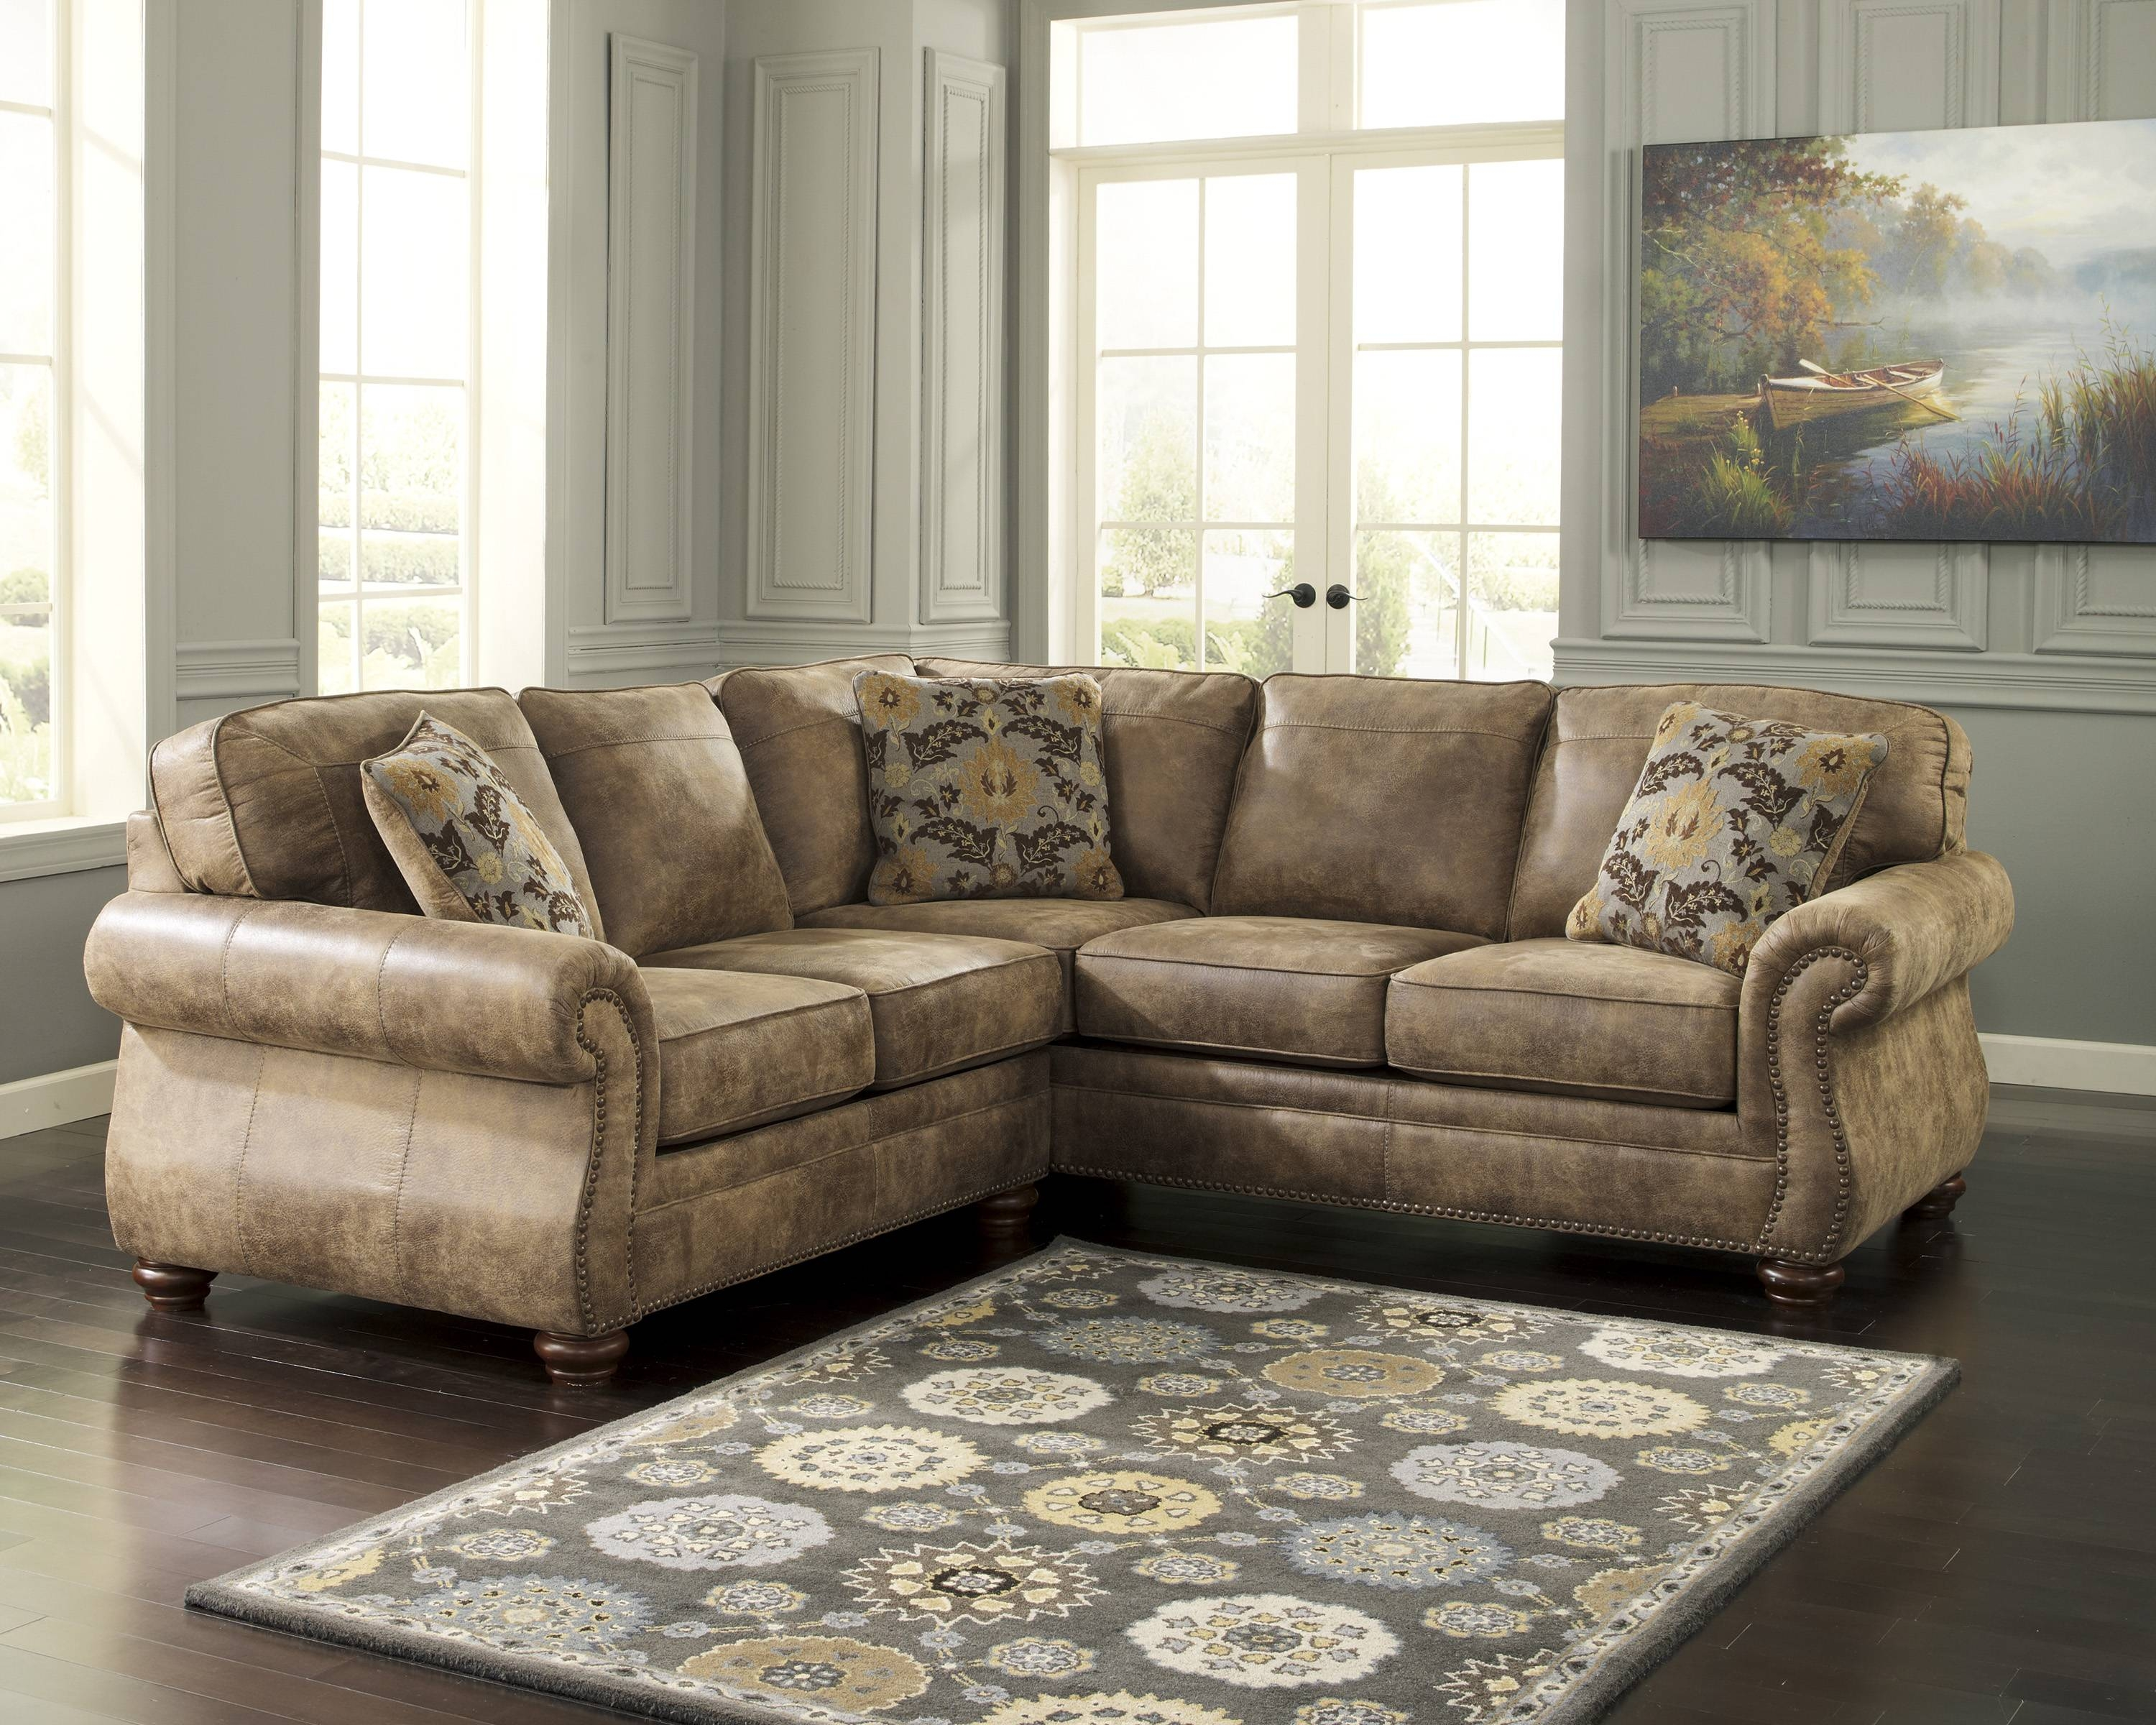 Living Room: Elegant Ashley Leather Sectional Sofa For Comfortable with regard to Ashley Furniture Corduroy Sectional Sofas (Image 13 of 15)